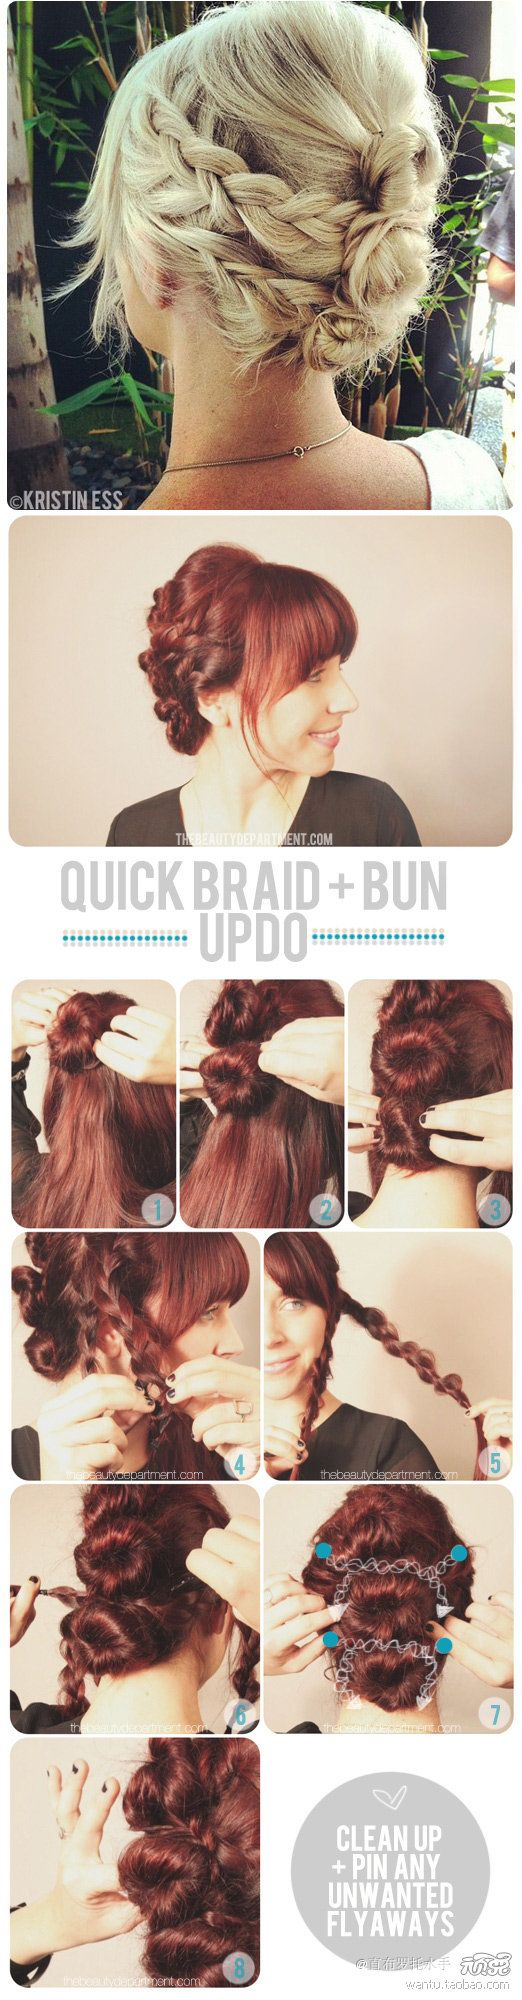 47 best things to do with hair monster images on pinterest 20 amazing braided hairstyles tutorials solutioingenieria Image collections